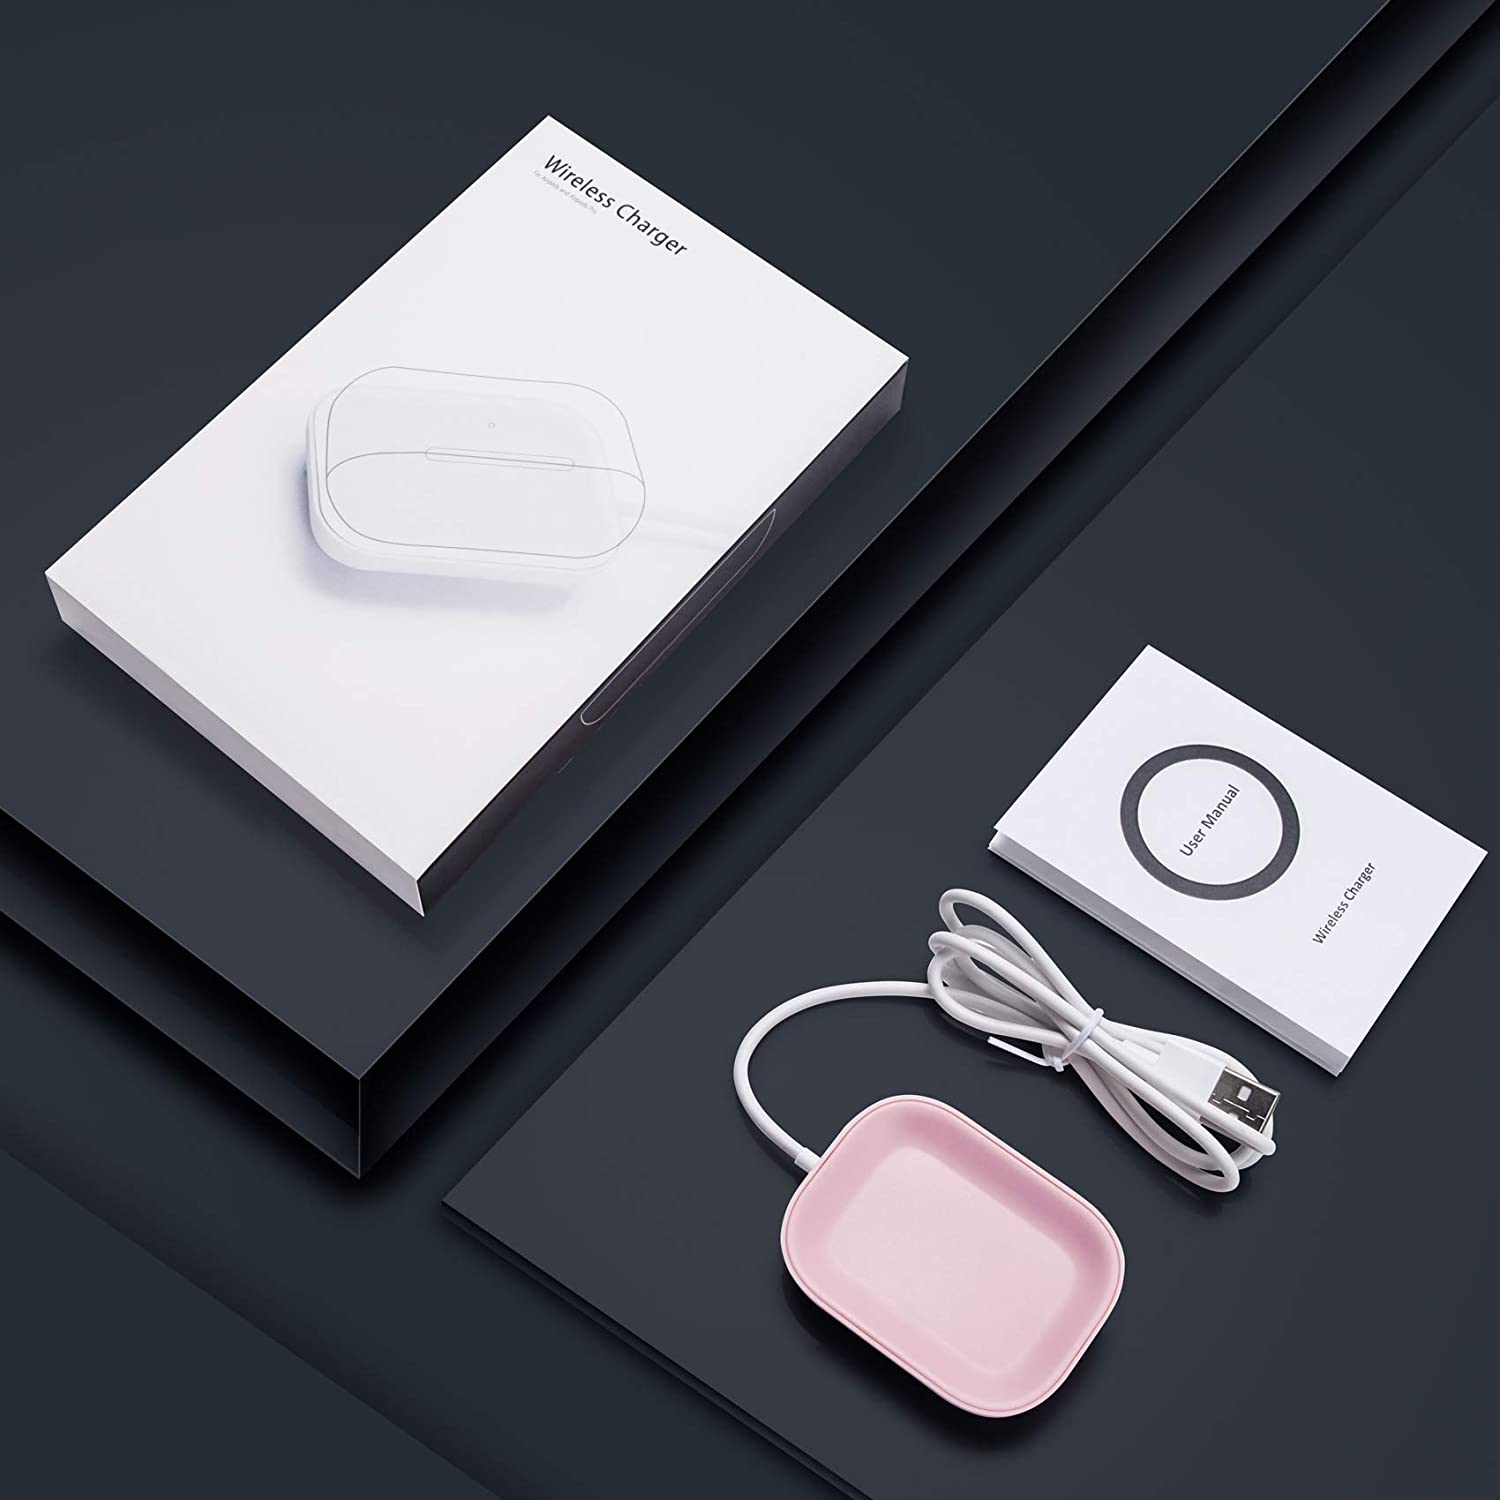 Wireless Charging Pad for Samsung Galaxy Buds//Earbuds Black-1 FutureCharger Wireless Charger for Samsung Galaxy Buds+Plus Wireless Bluetooth Galaxy Buds Charging Station Wireless Earbuds Charger